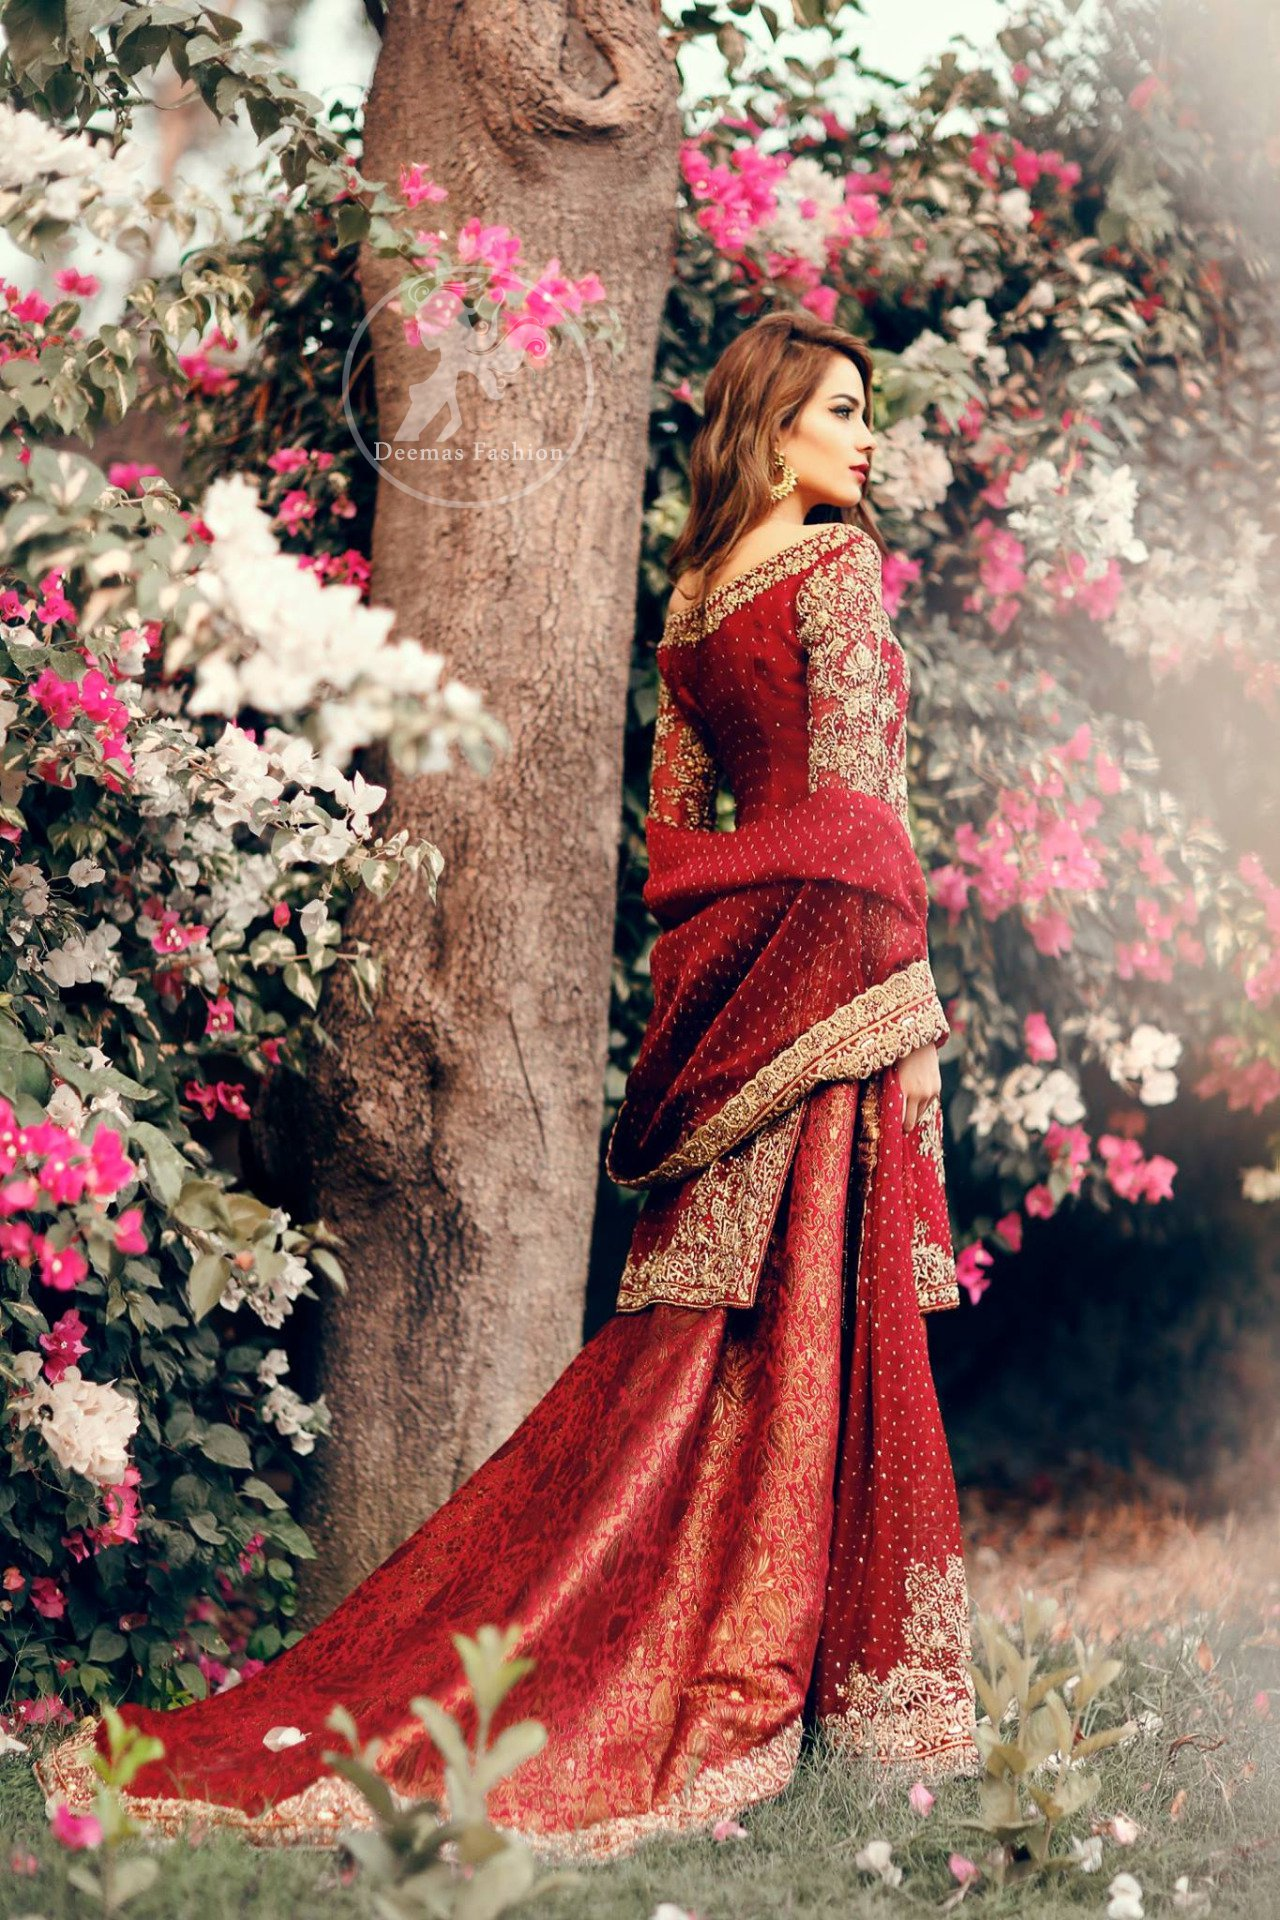 Deep Red Fully Embroidered Shirt - Back Trail Lehenga - Bridal Dupatta